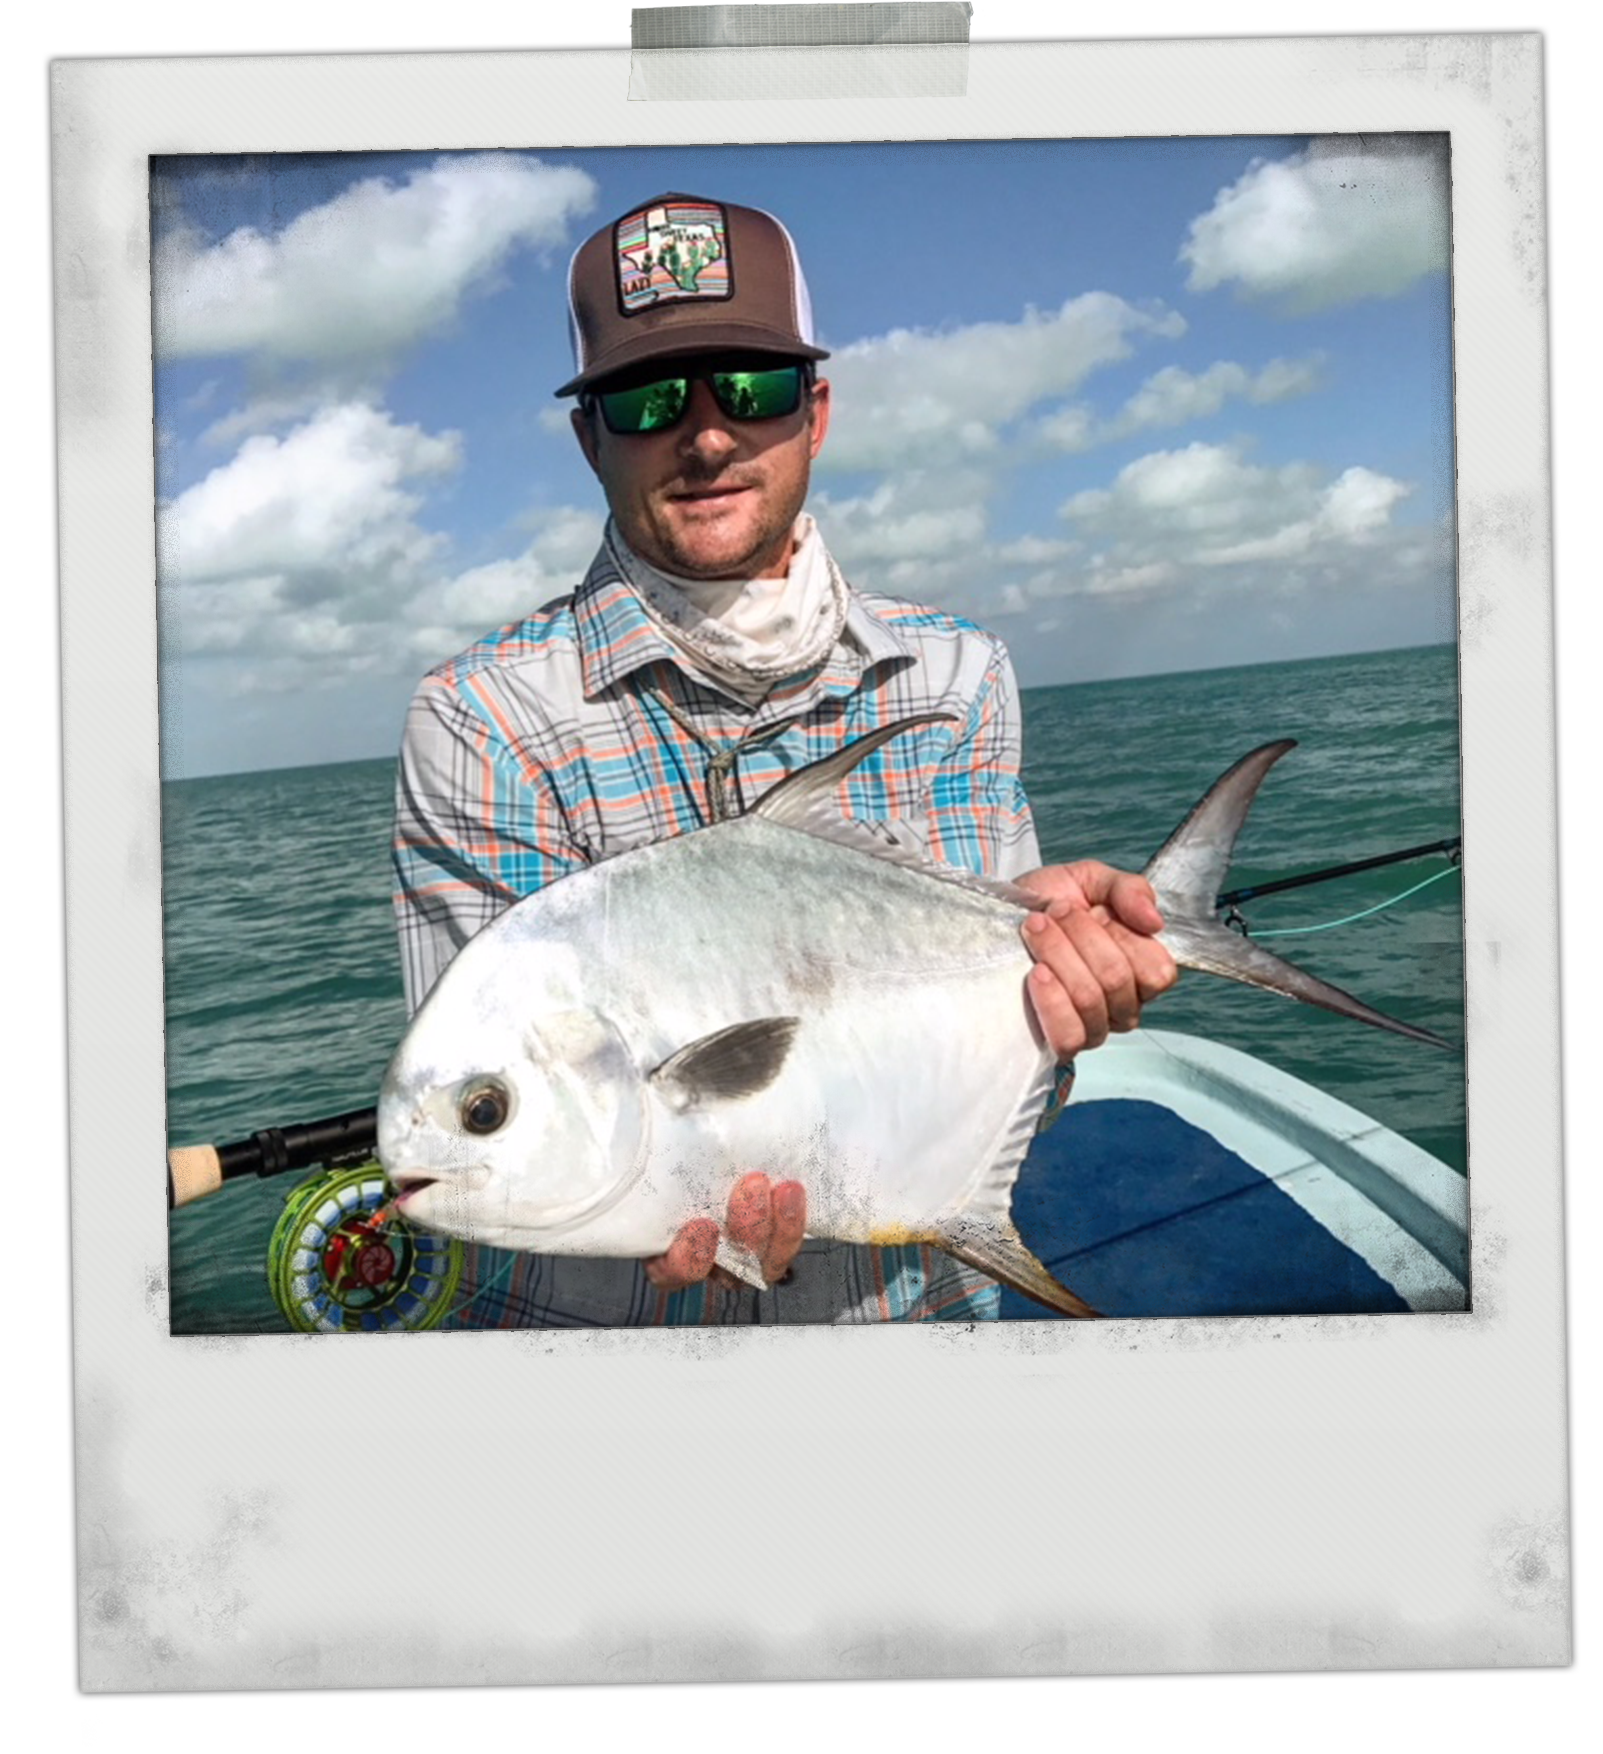 Permit on Fly at the Grand Slam Lodge